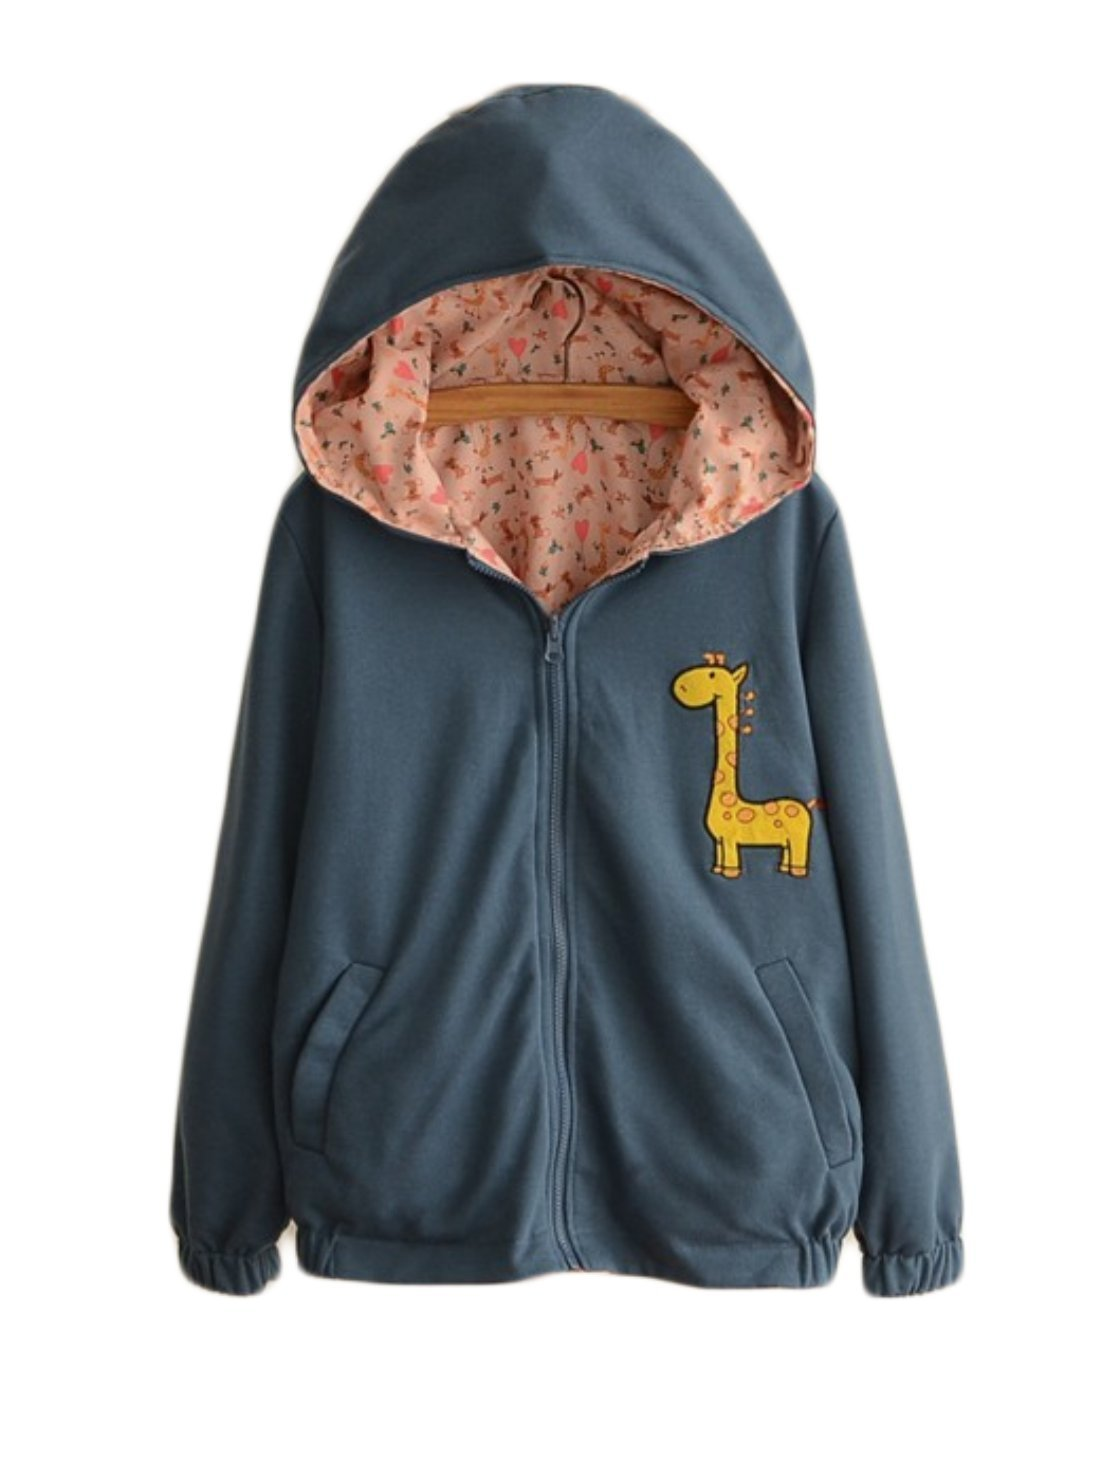 Aza Boutique Girl's Deer Embroidery College Style Reversible Zipper Hooded Coat